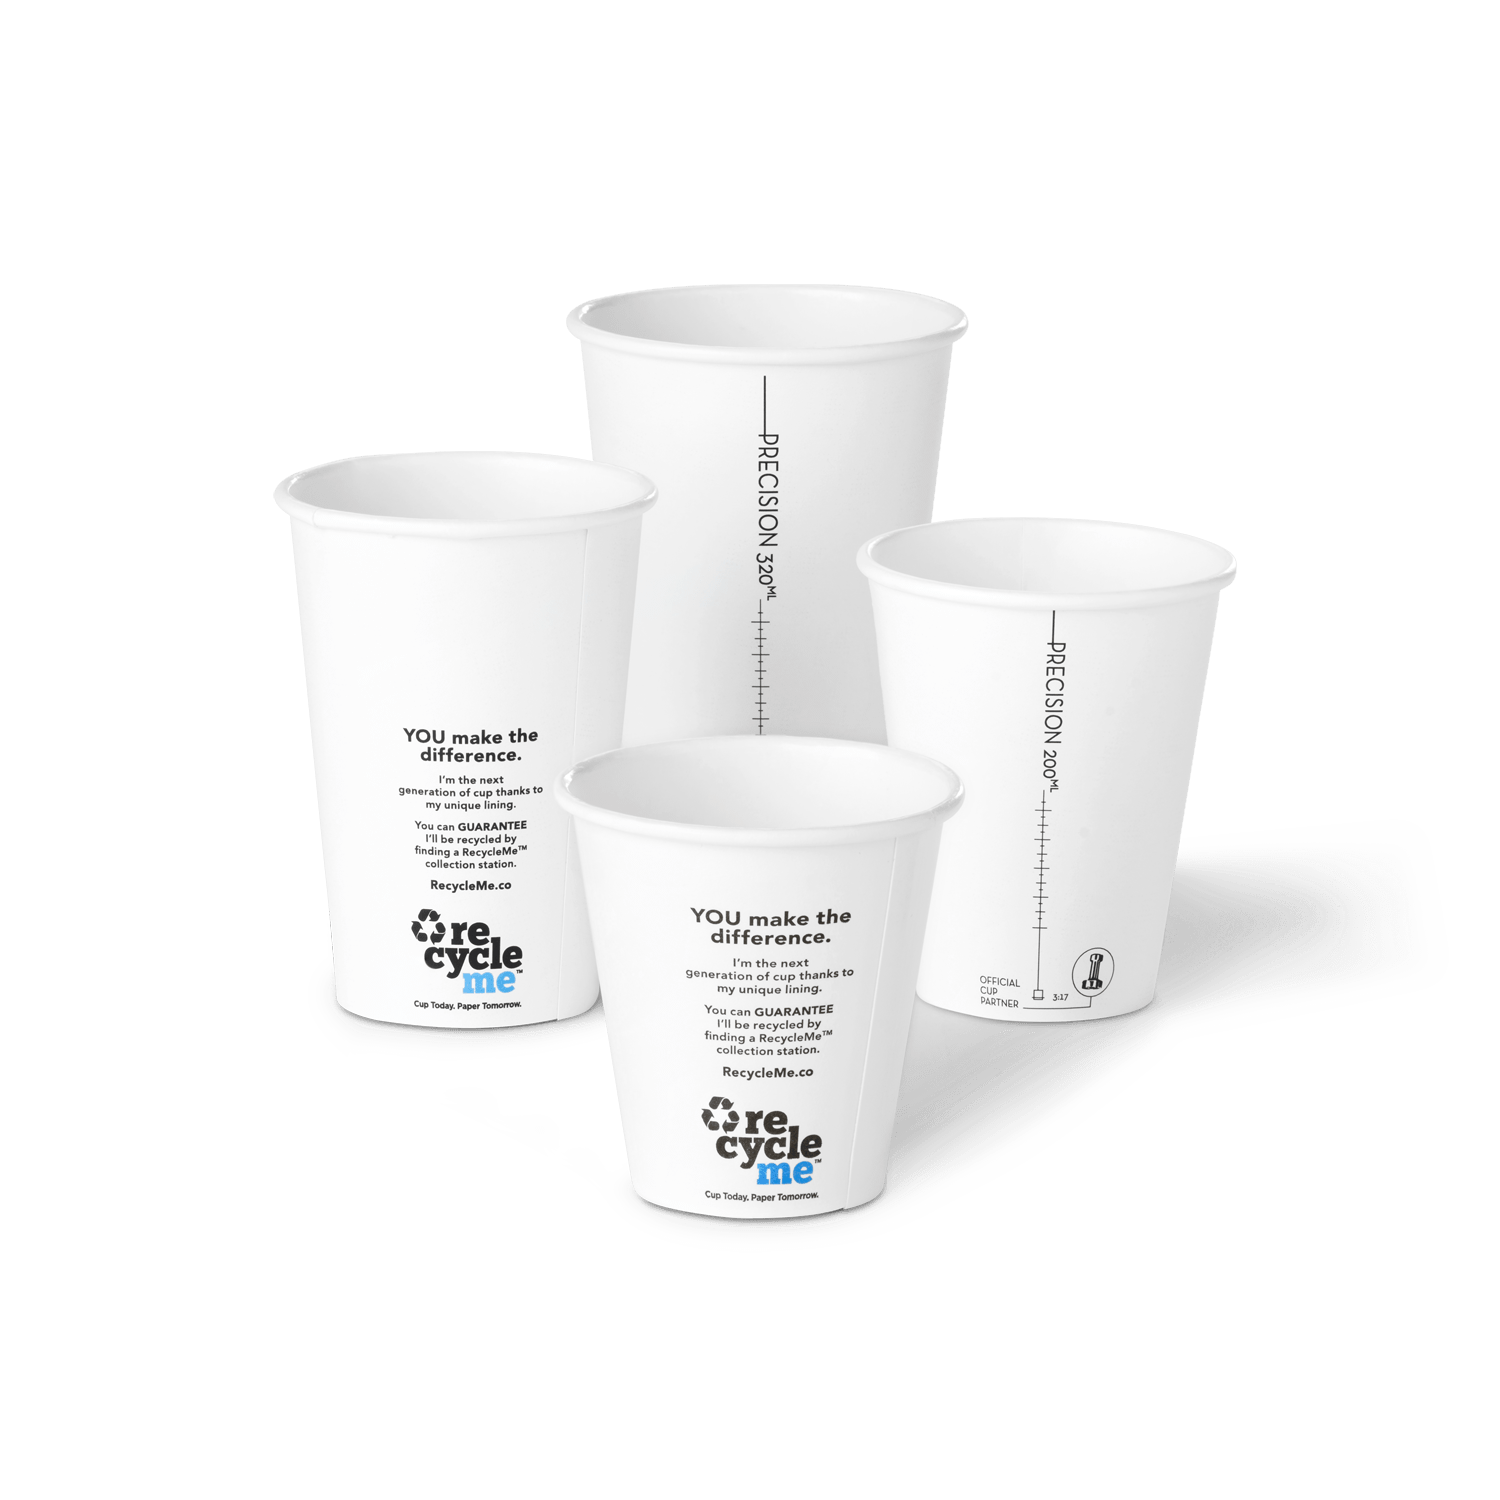 Recyclable Takeaway Coffee Cups | RecycleMe™ Paper Cups